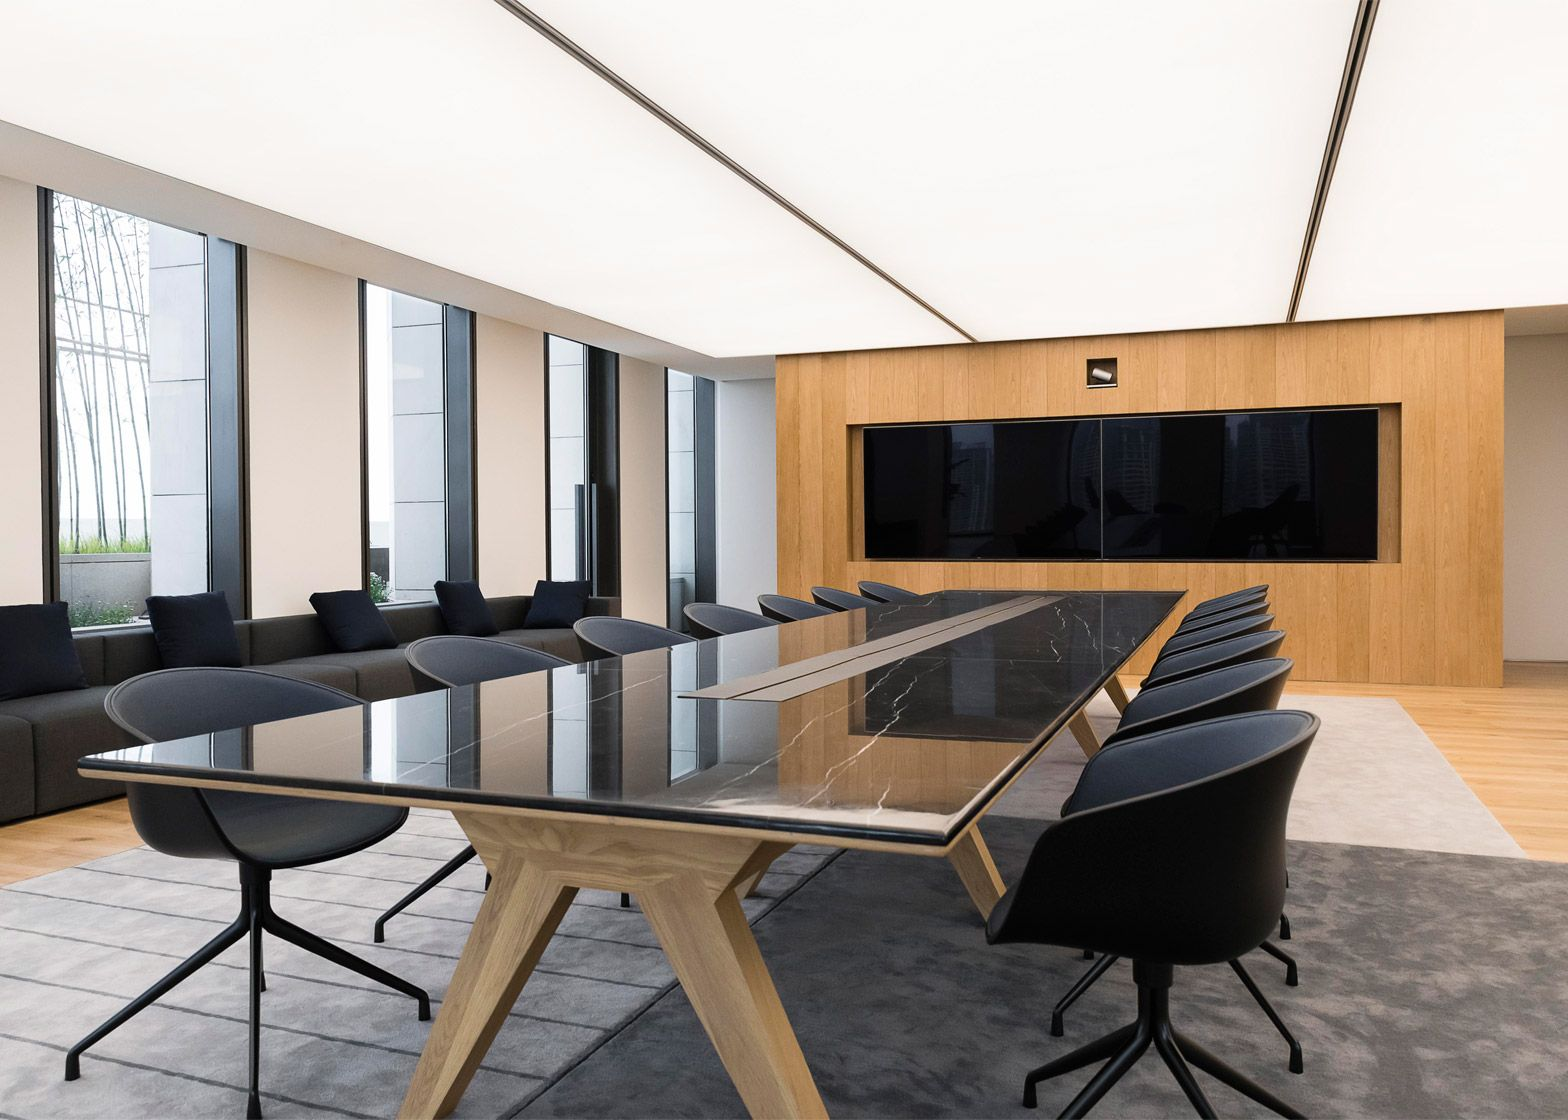 pin by frankinism on conference room pinterest meeting rooms